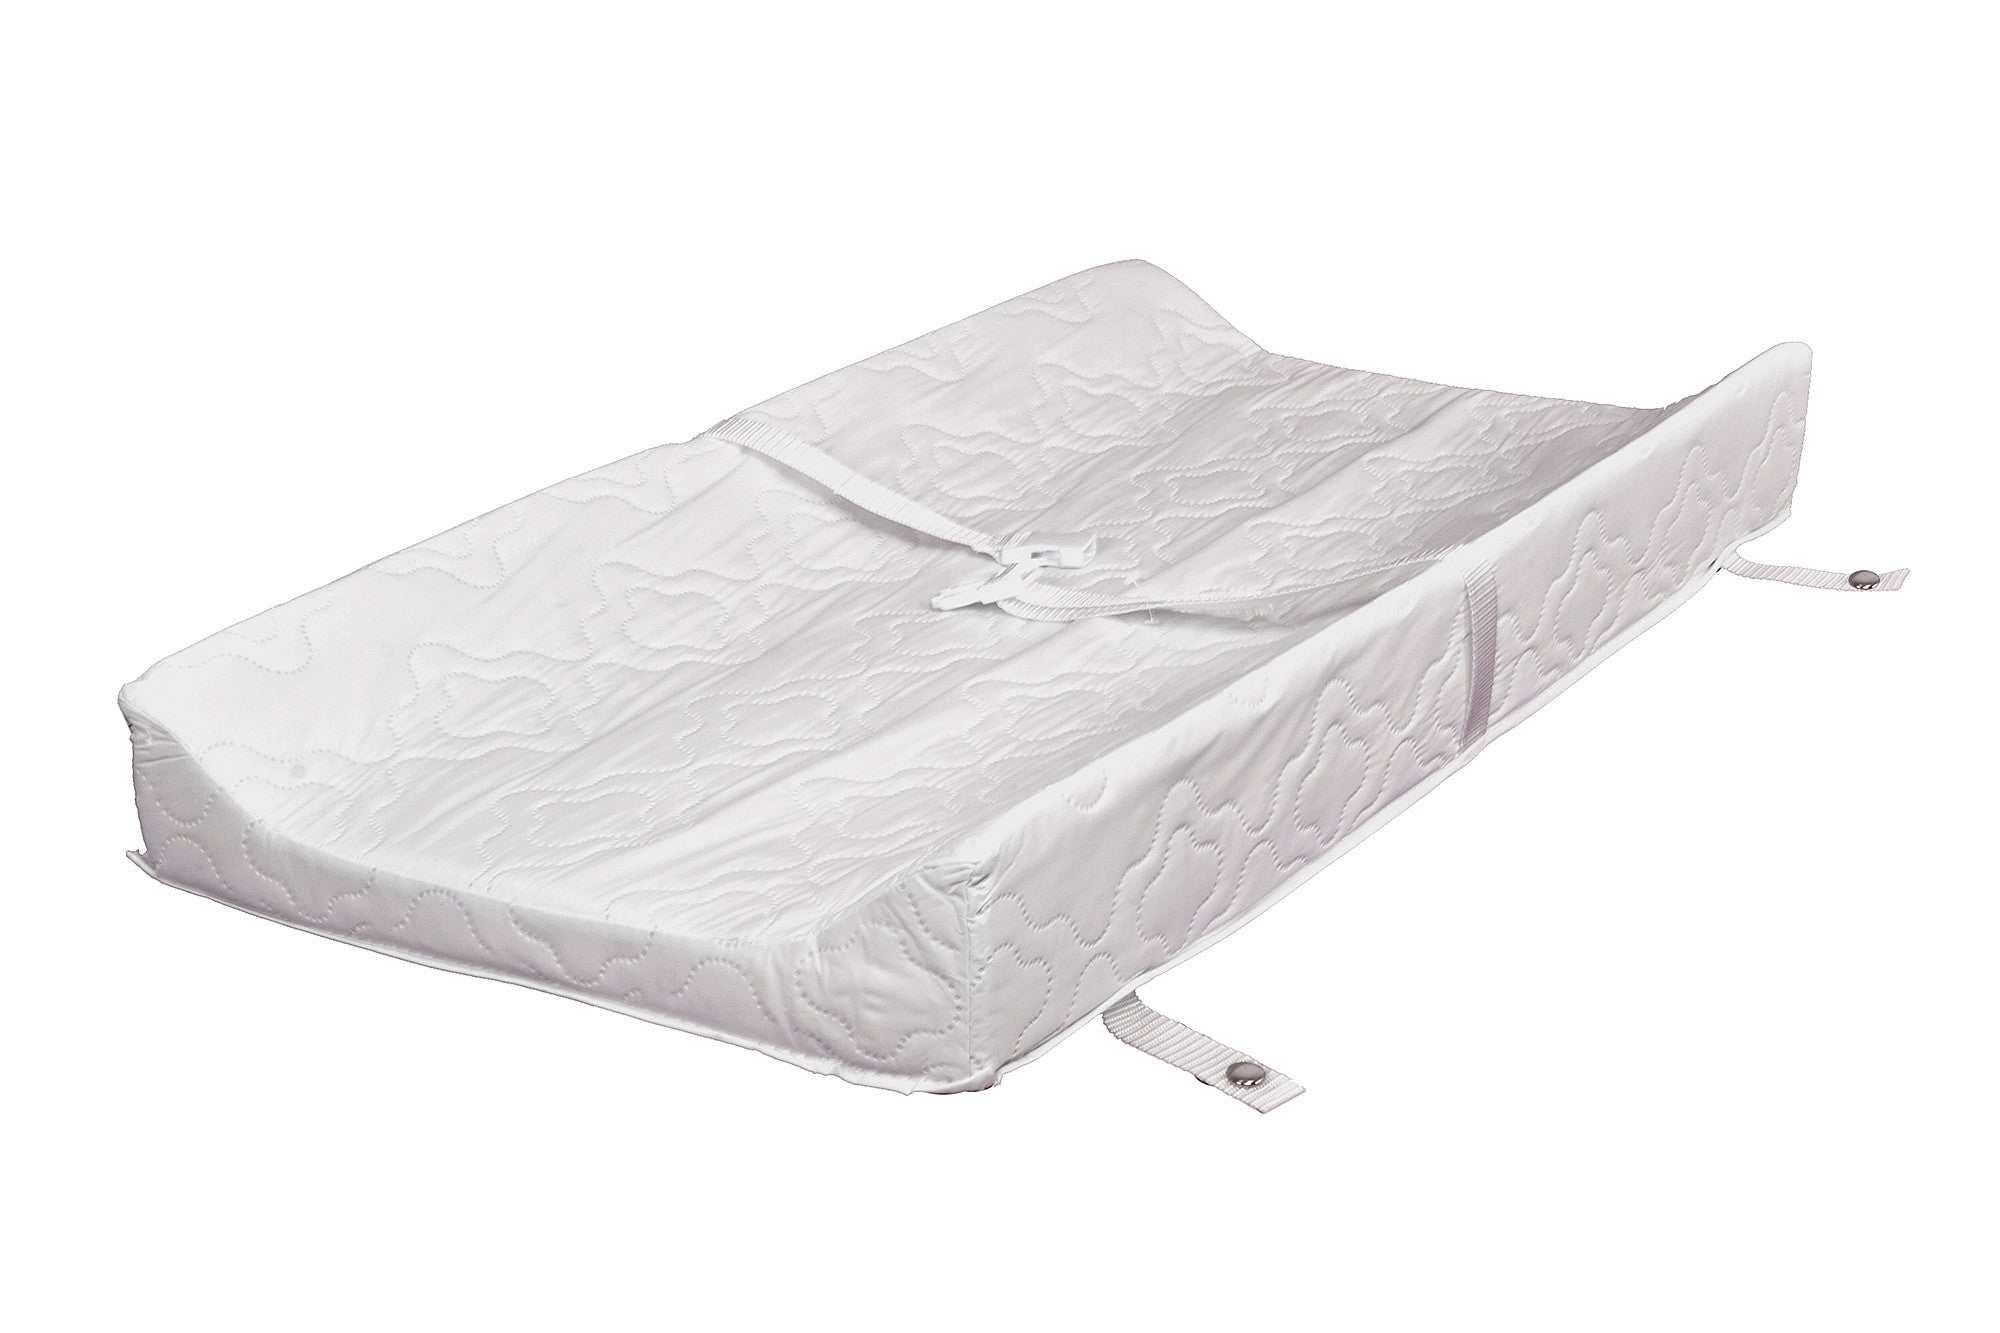 DaVinci Non-toxic Waterproof Contour Changing Pad for Dresser Top (34